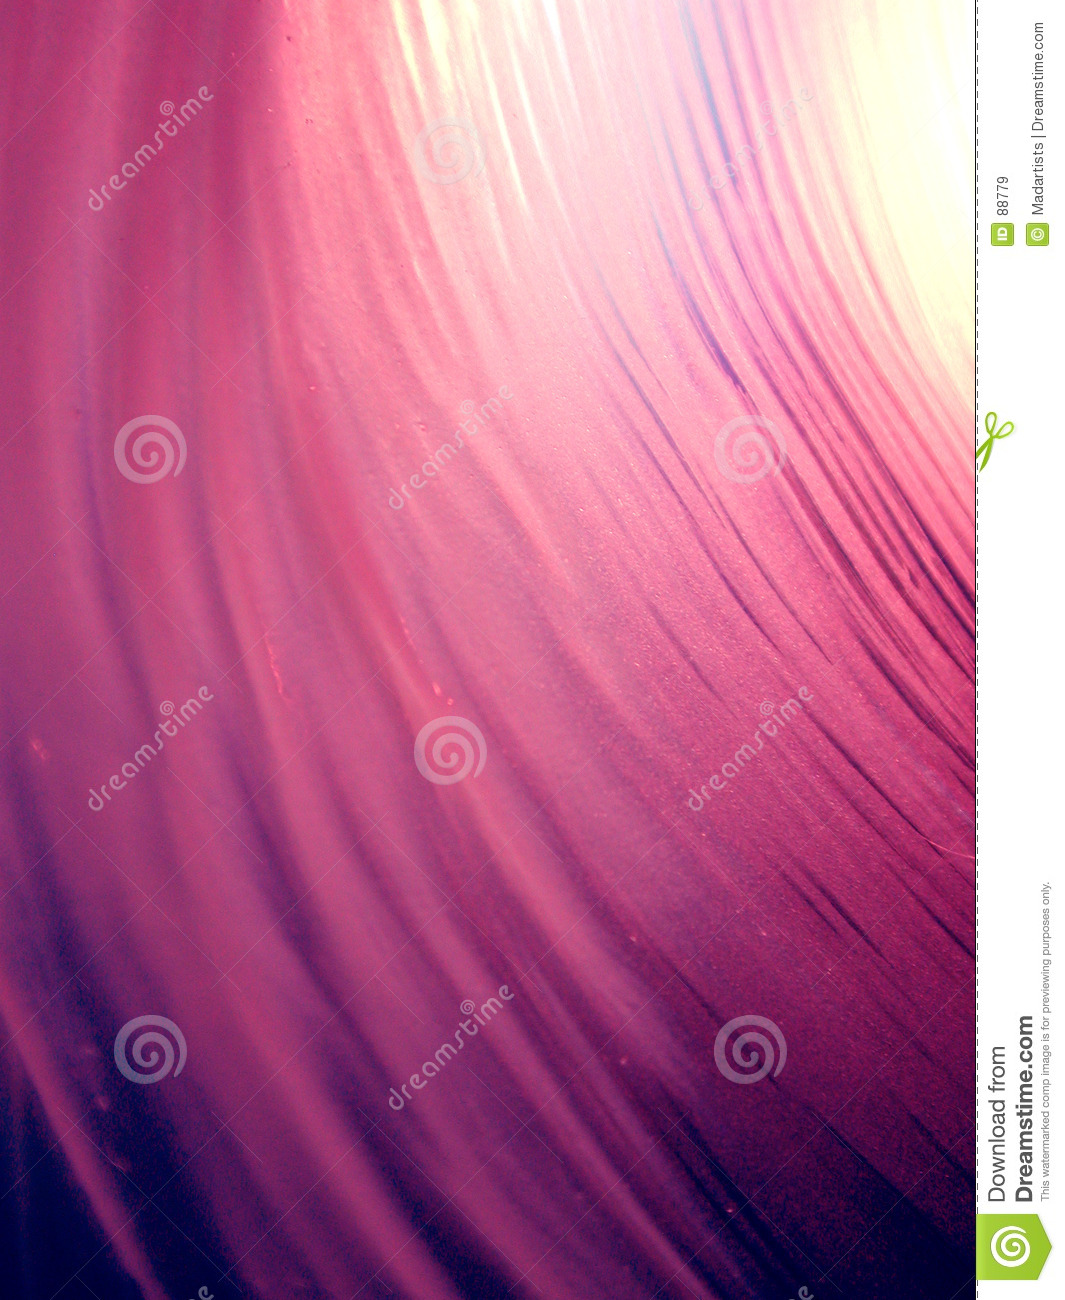 cool pink backgrounds texture royalty free stock images